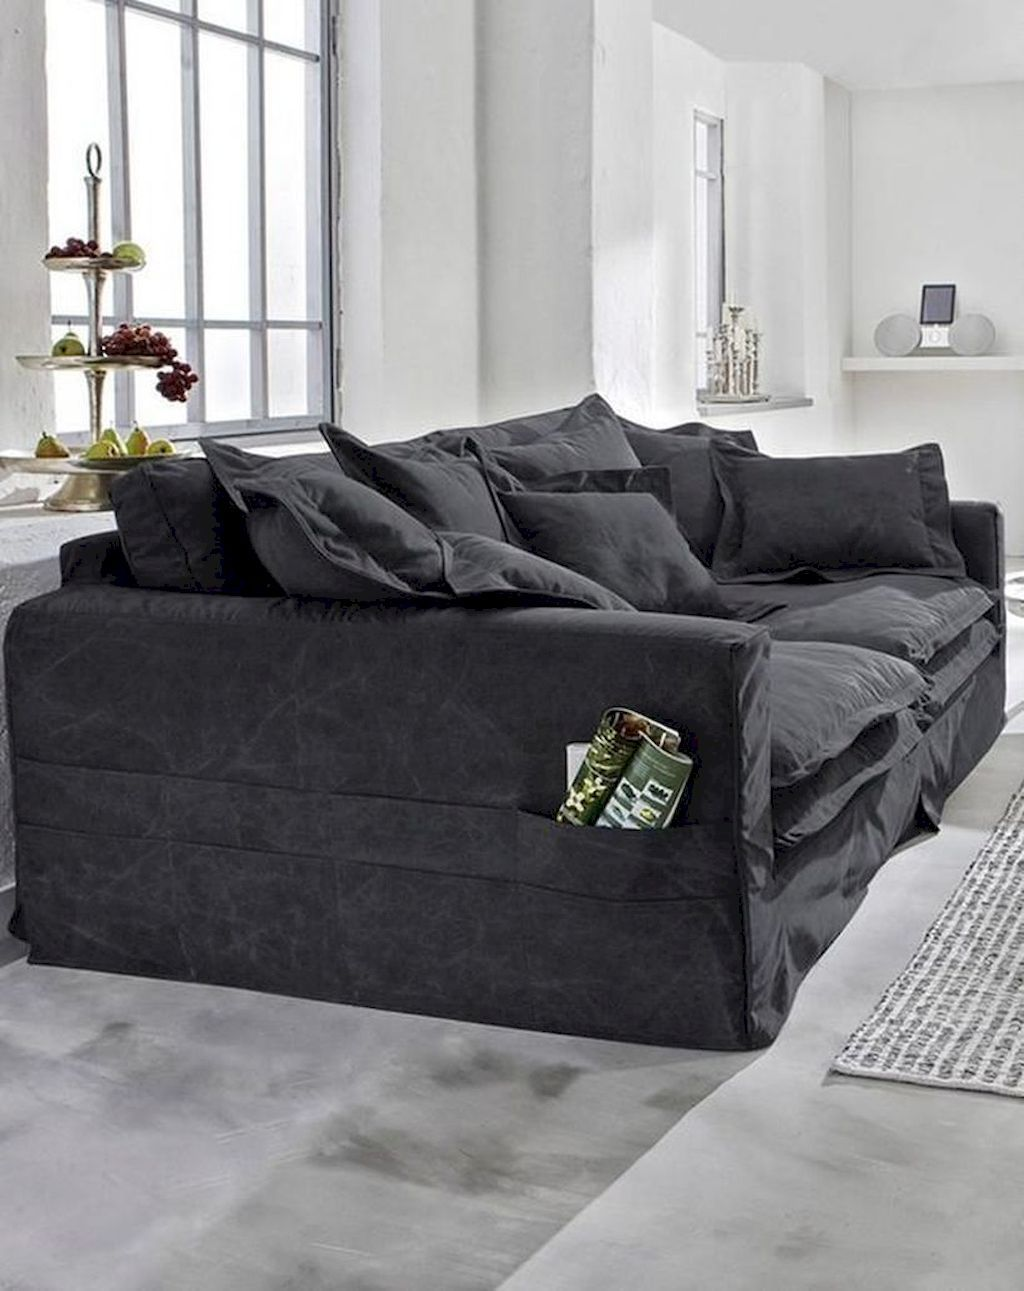 Shocking Sectional Couch To Match Your Dwelling Room House Comfy Sofa Living Rooms Couches Living Room Comfy Living Room Sofa Design